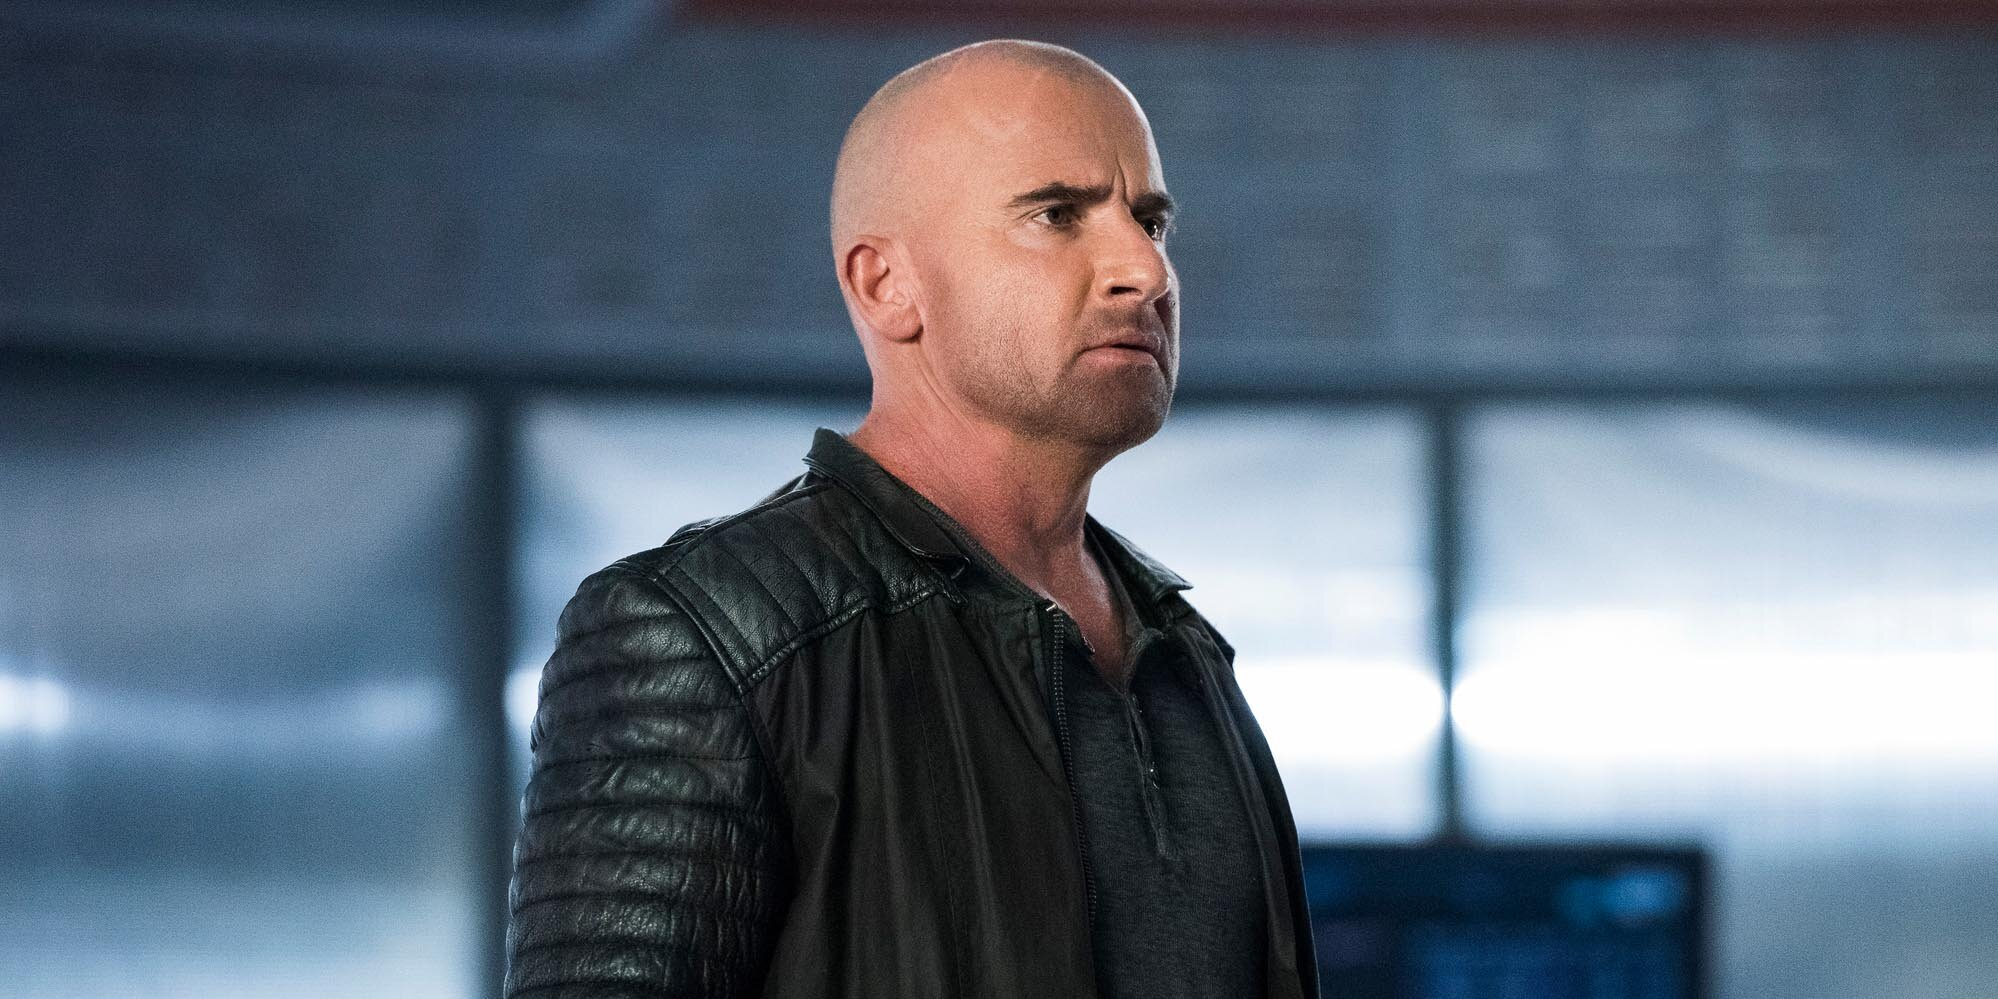 'Legends of Tomorrow' star Dominic Purcell says he's 'walking away' from the CW show